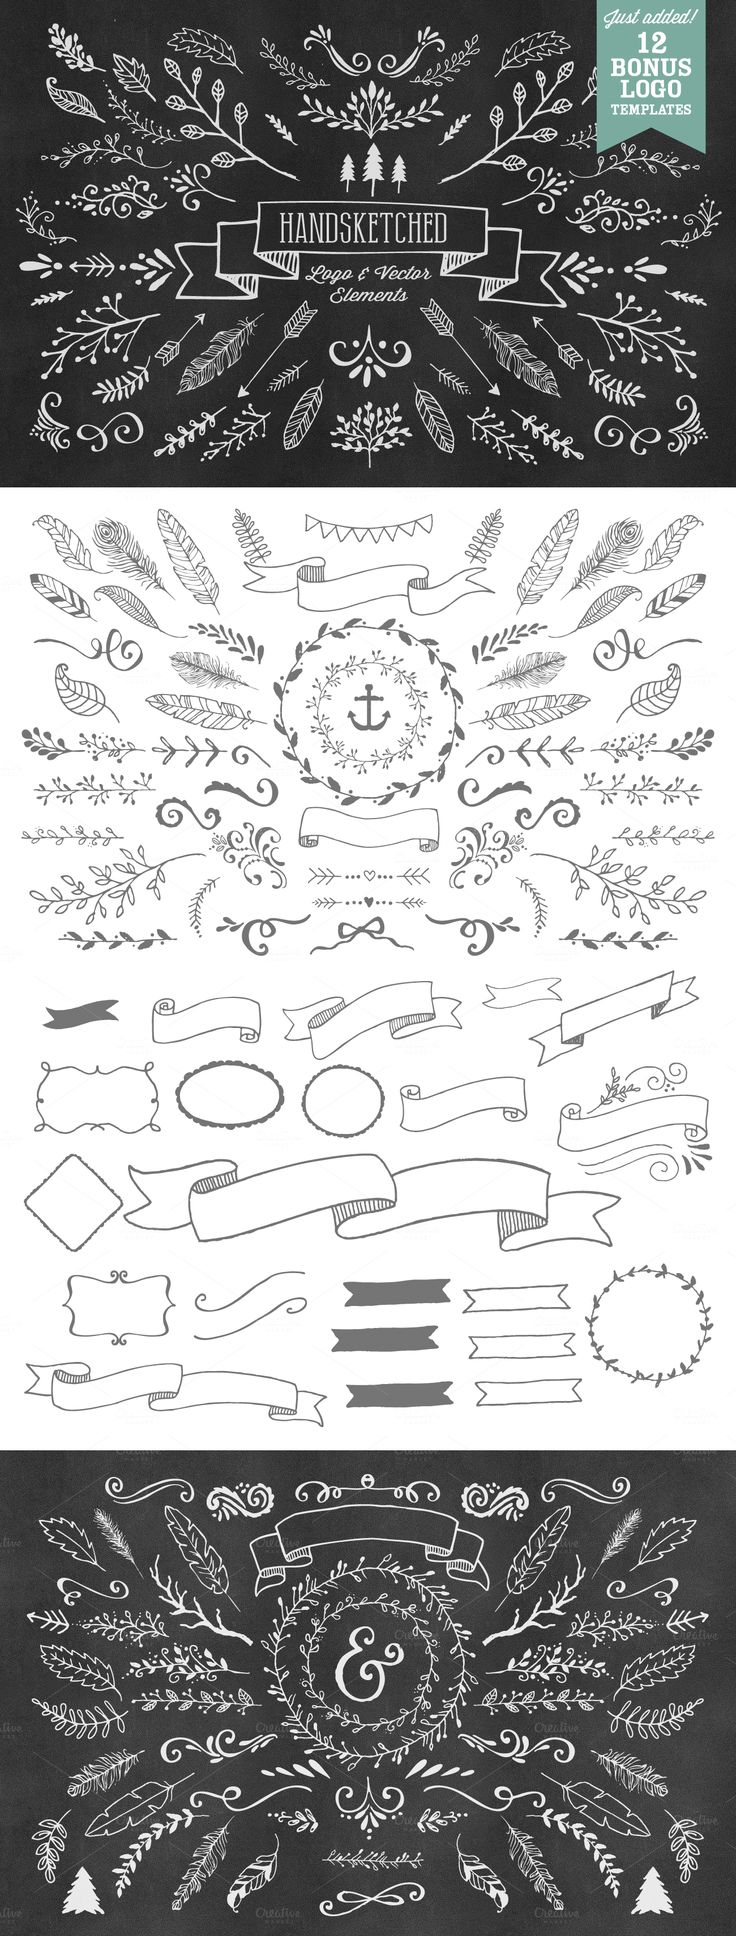 bons elementos de composição | HandSketched Vector Elements Pack by Nicky Laatz